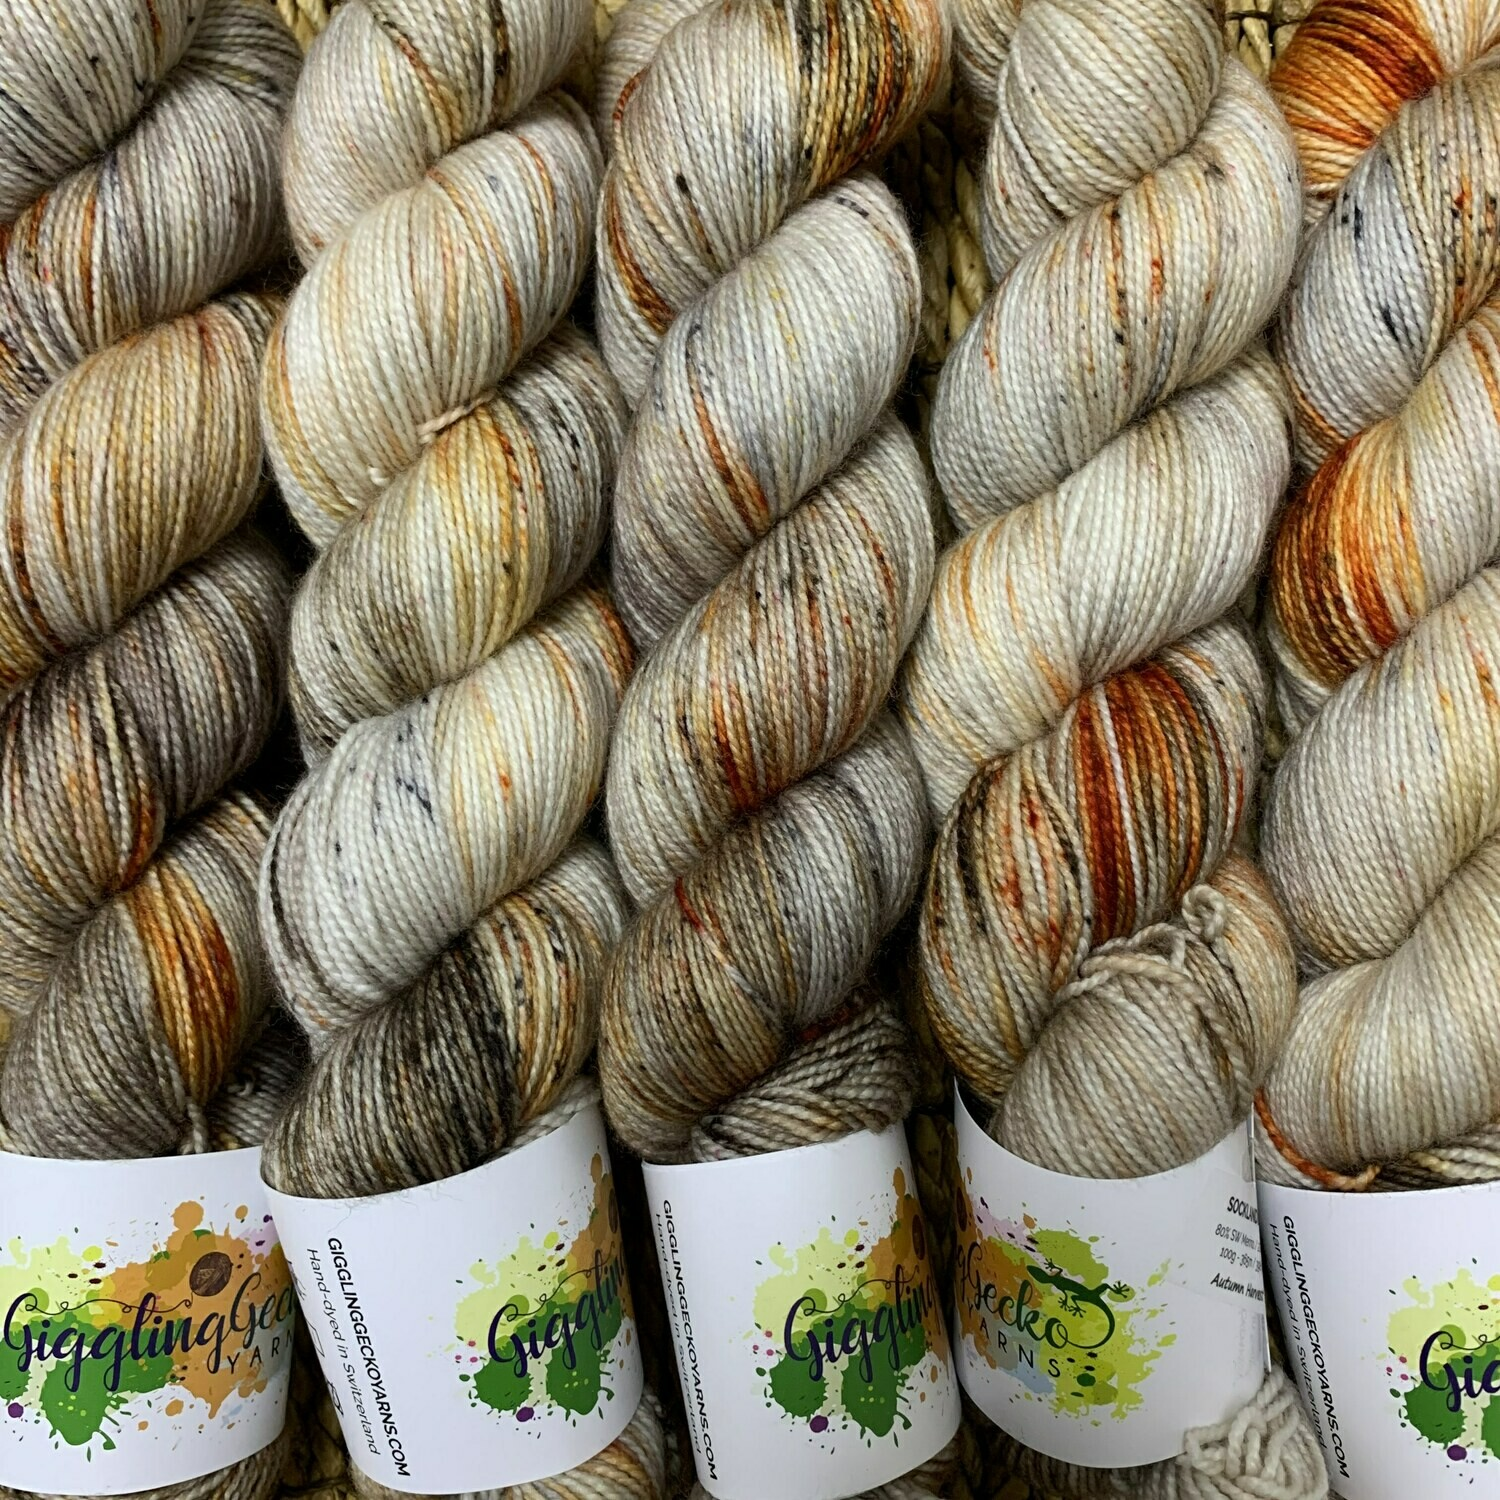 GGY GigglingGecko Socklandia Soxs Yarn Autumn Harvest